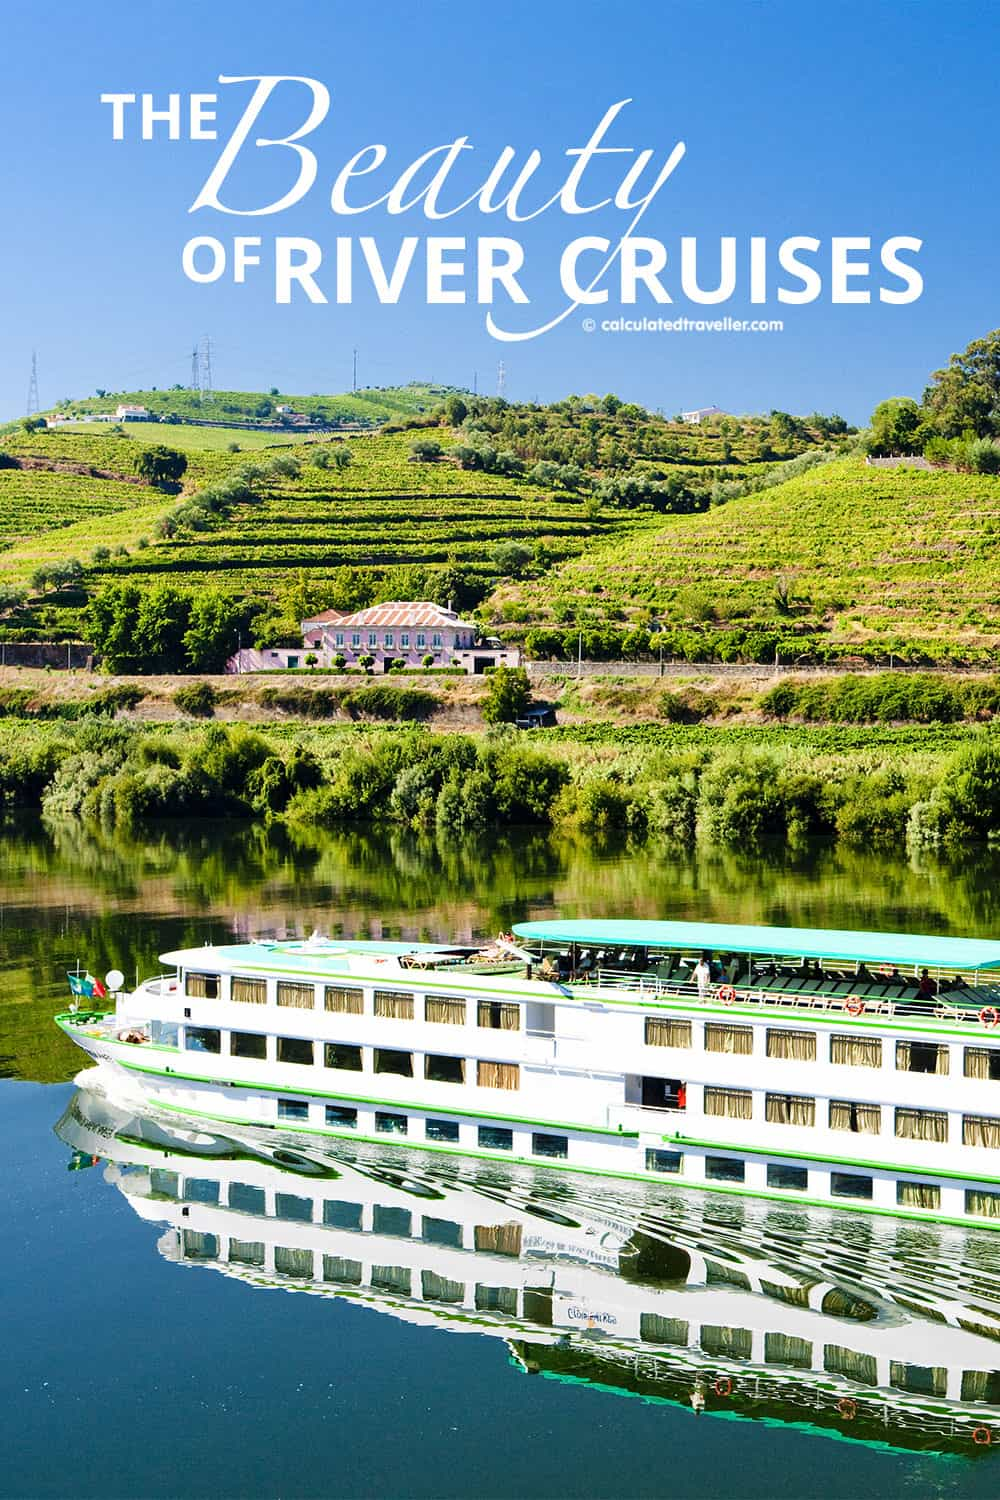 The Beauty of River Cruises by Calculated Traveller | #cruise #river #EuropeanCruise #riverboat